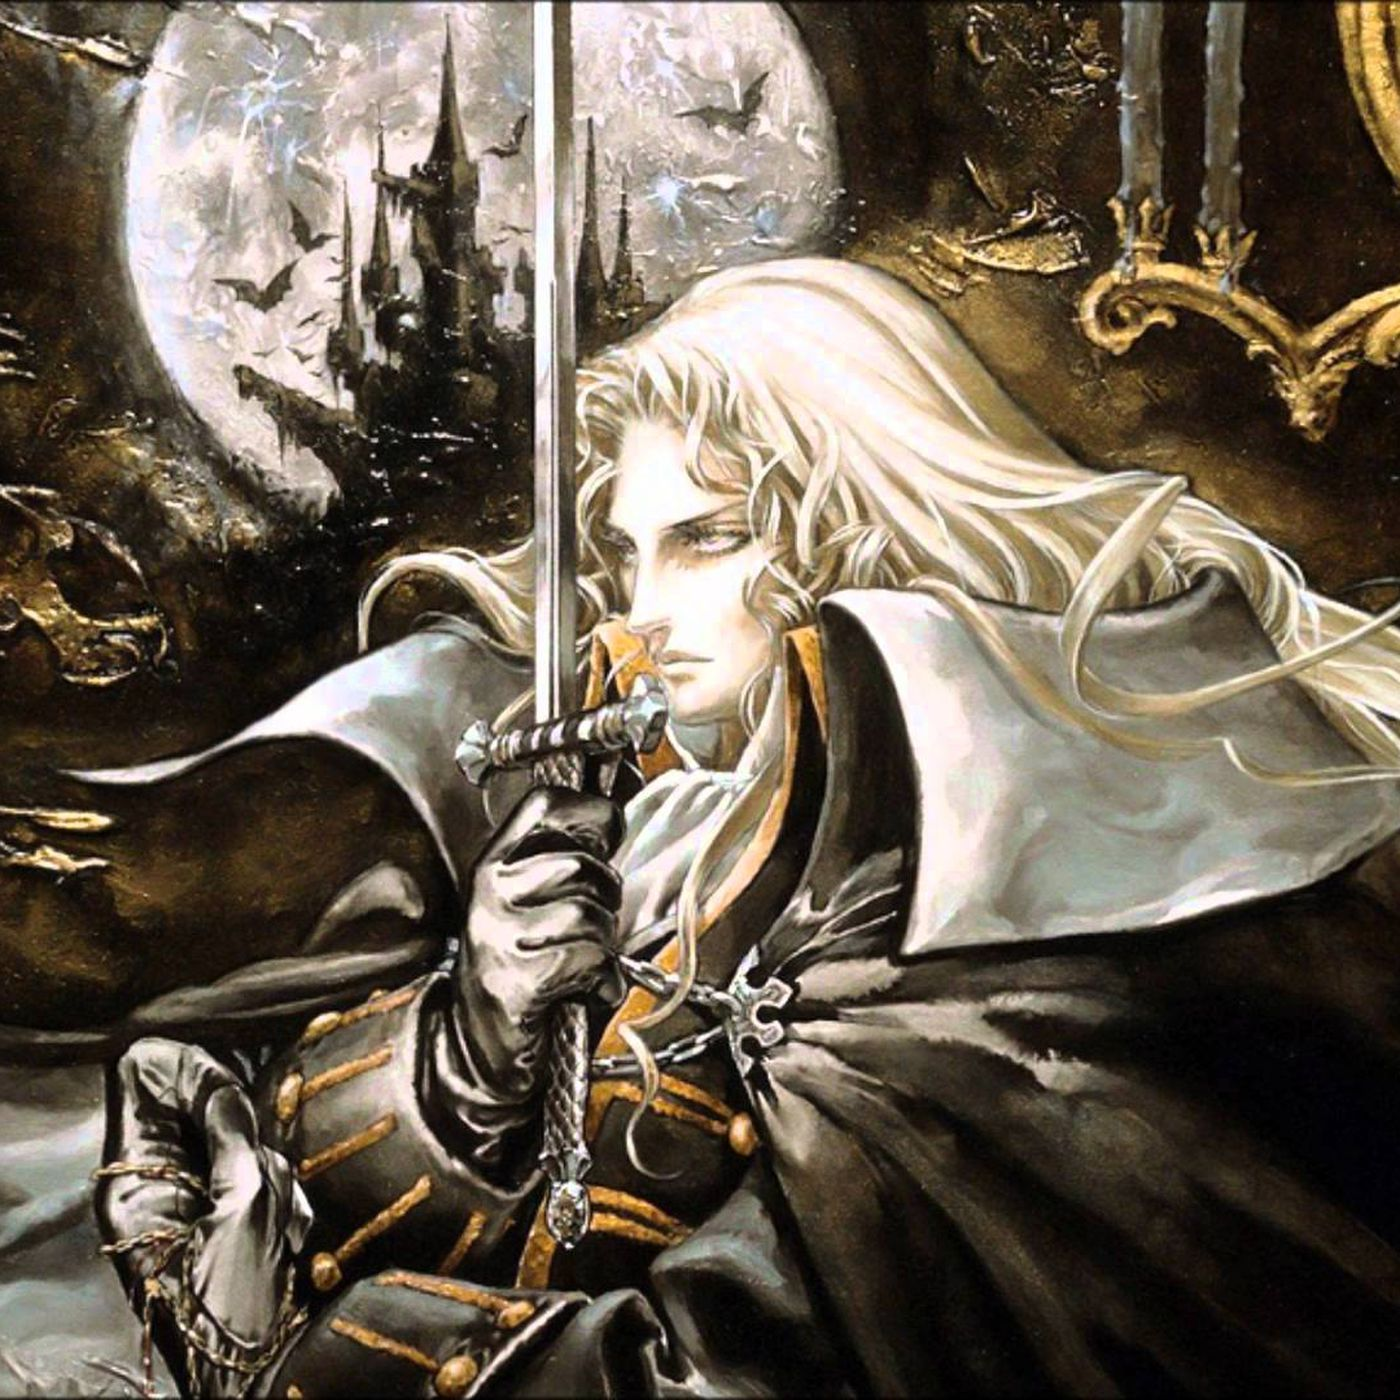 Castlevania Symphony Of The Night For Ps4 May Not Be The Game You